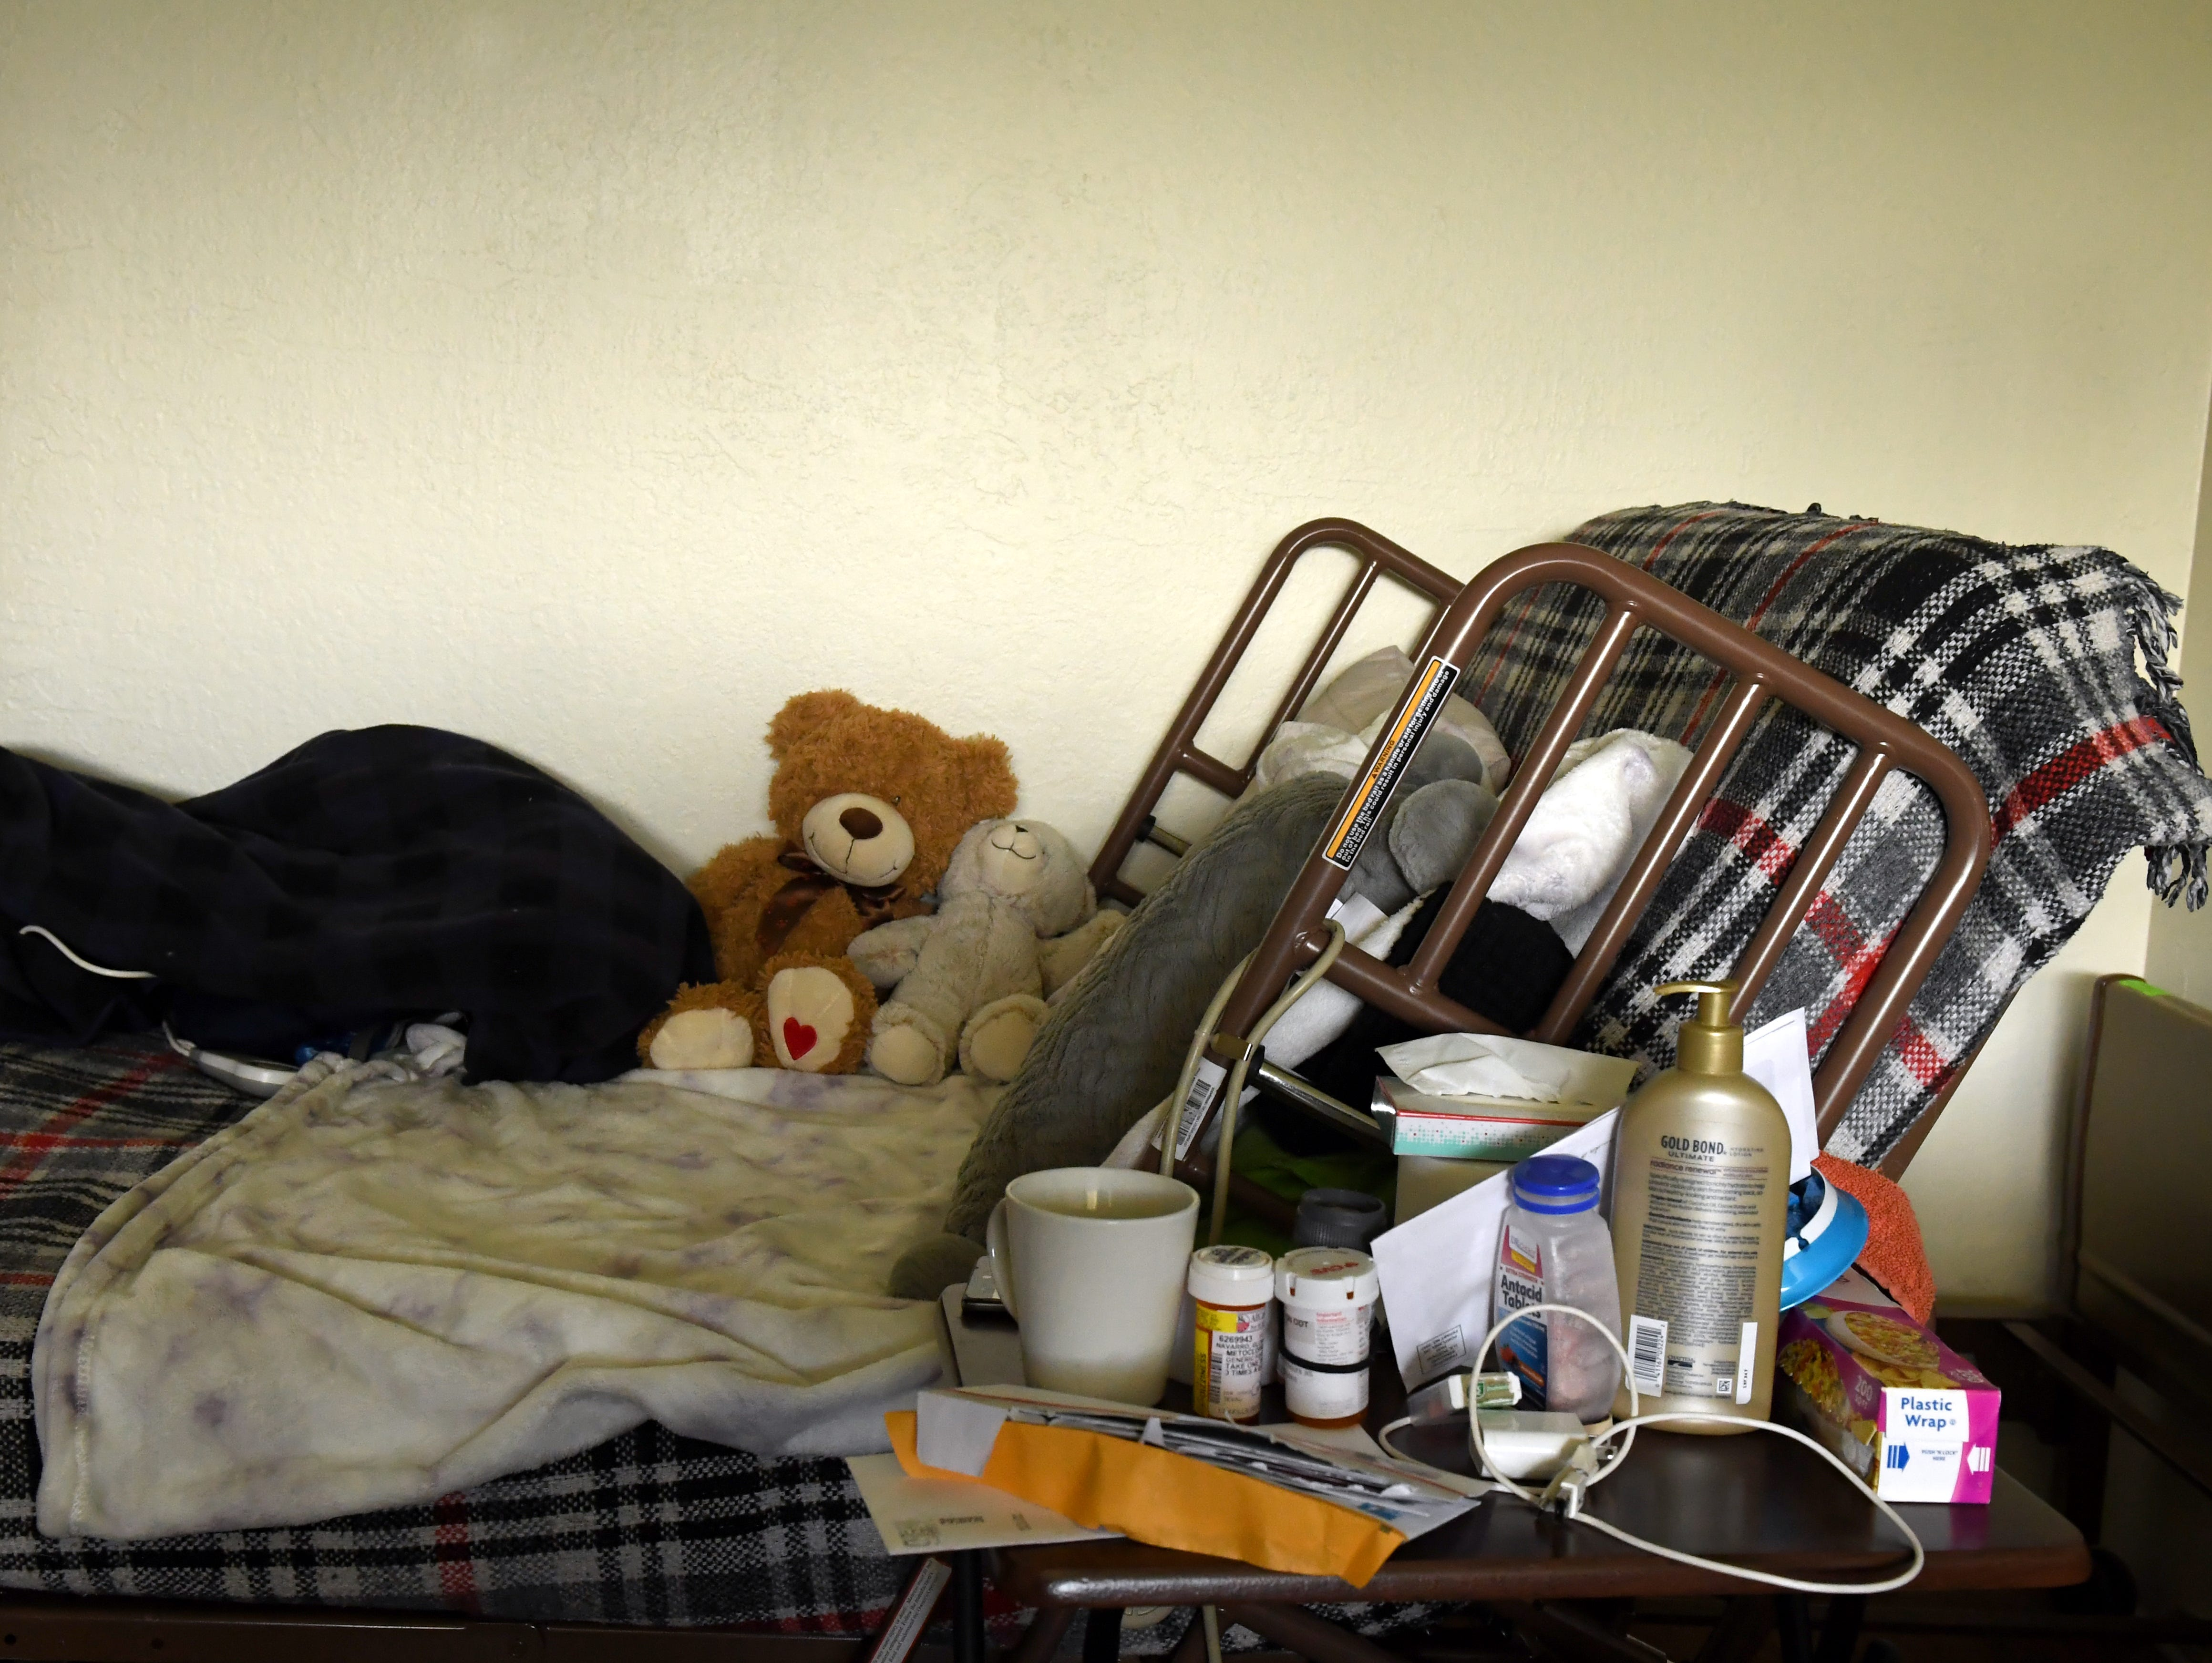 Gloria Torrez was diagnosed with stomach cancer, and as she became more ill, she has stayed in this bed in her Salinas home.